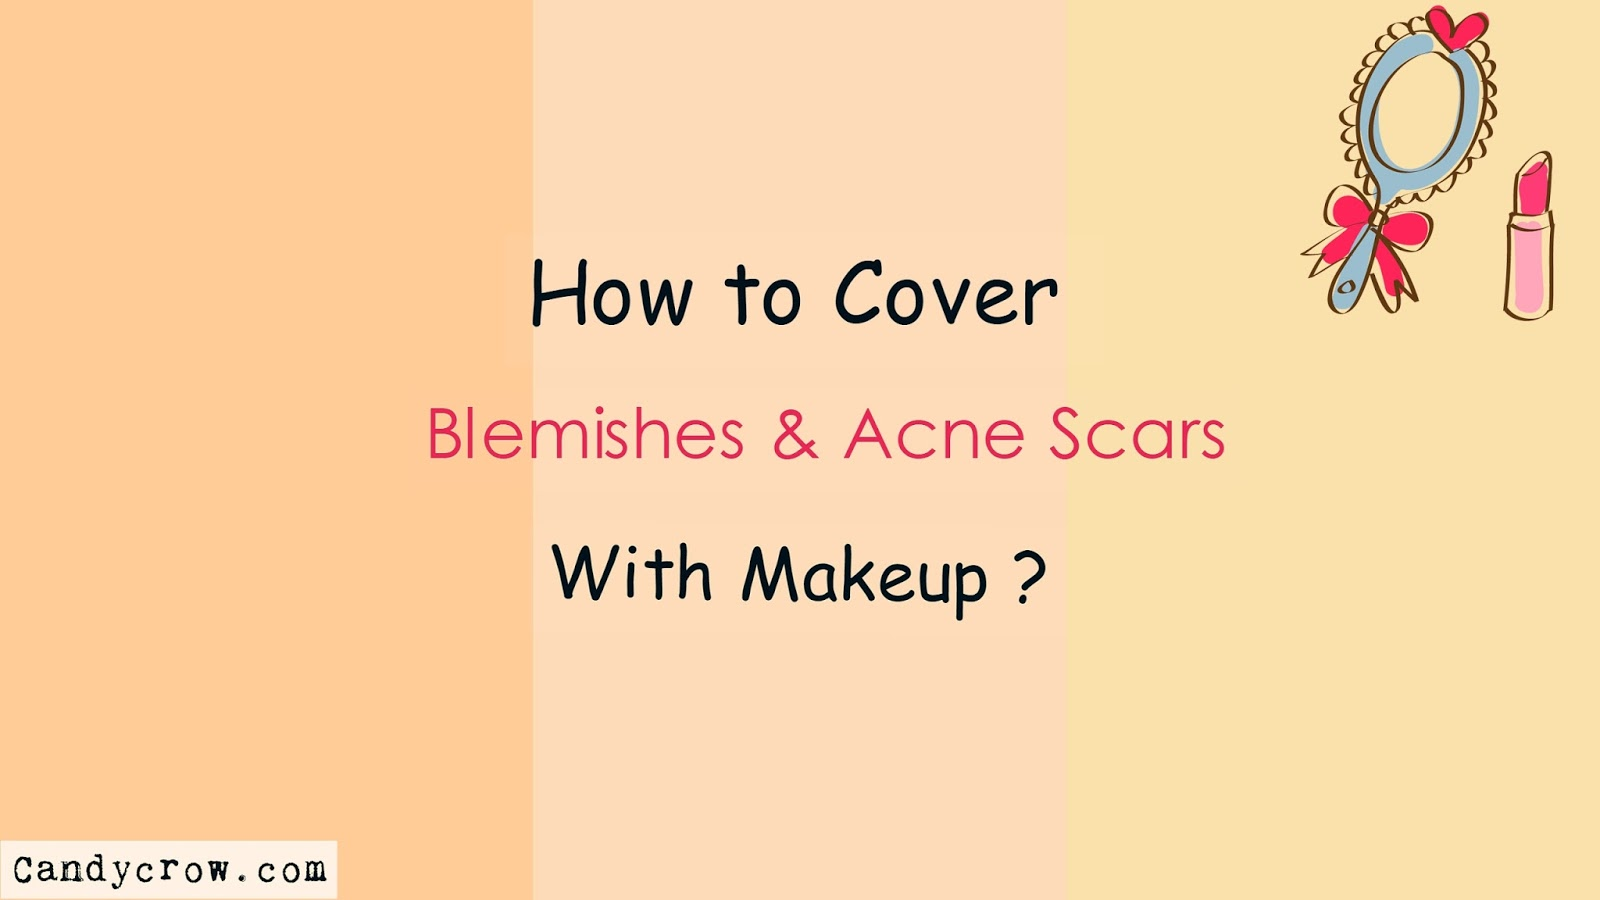 How to Cover Blemishes and Acne Scars with Makeup ? with photos